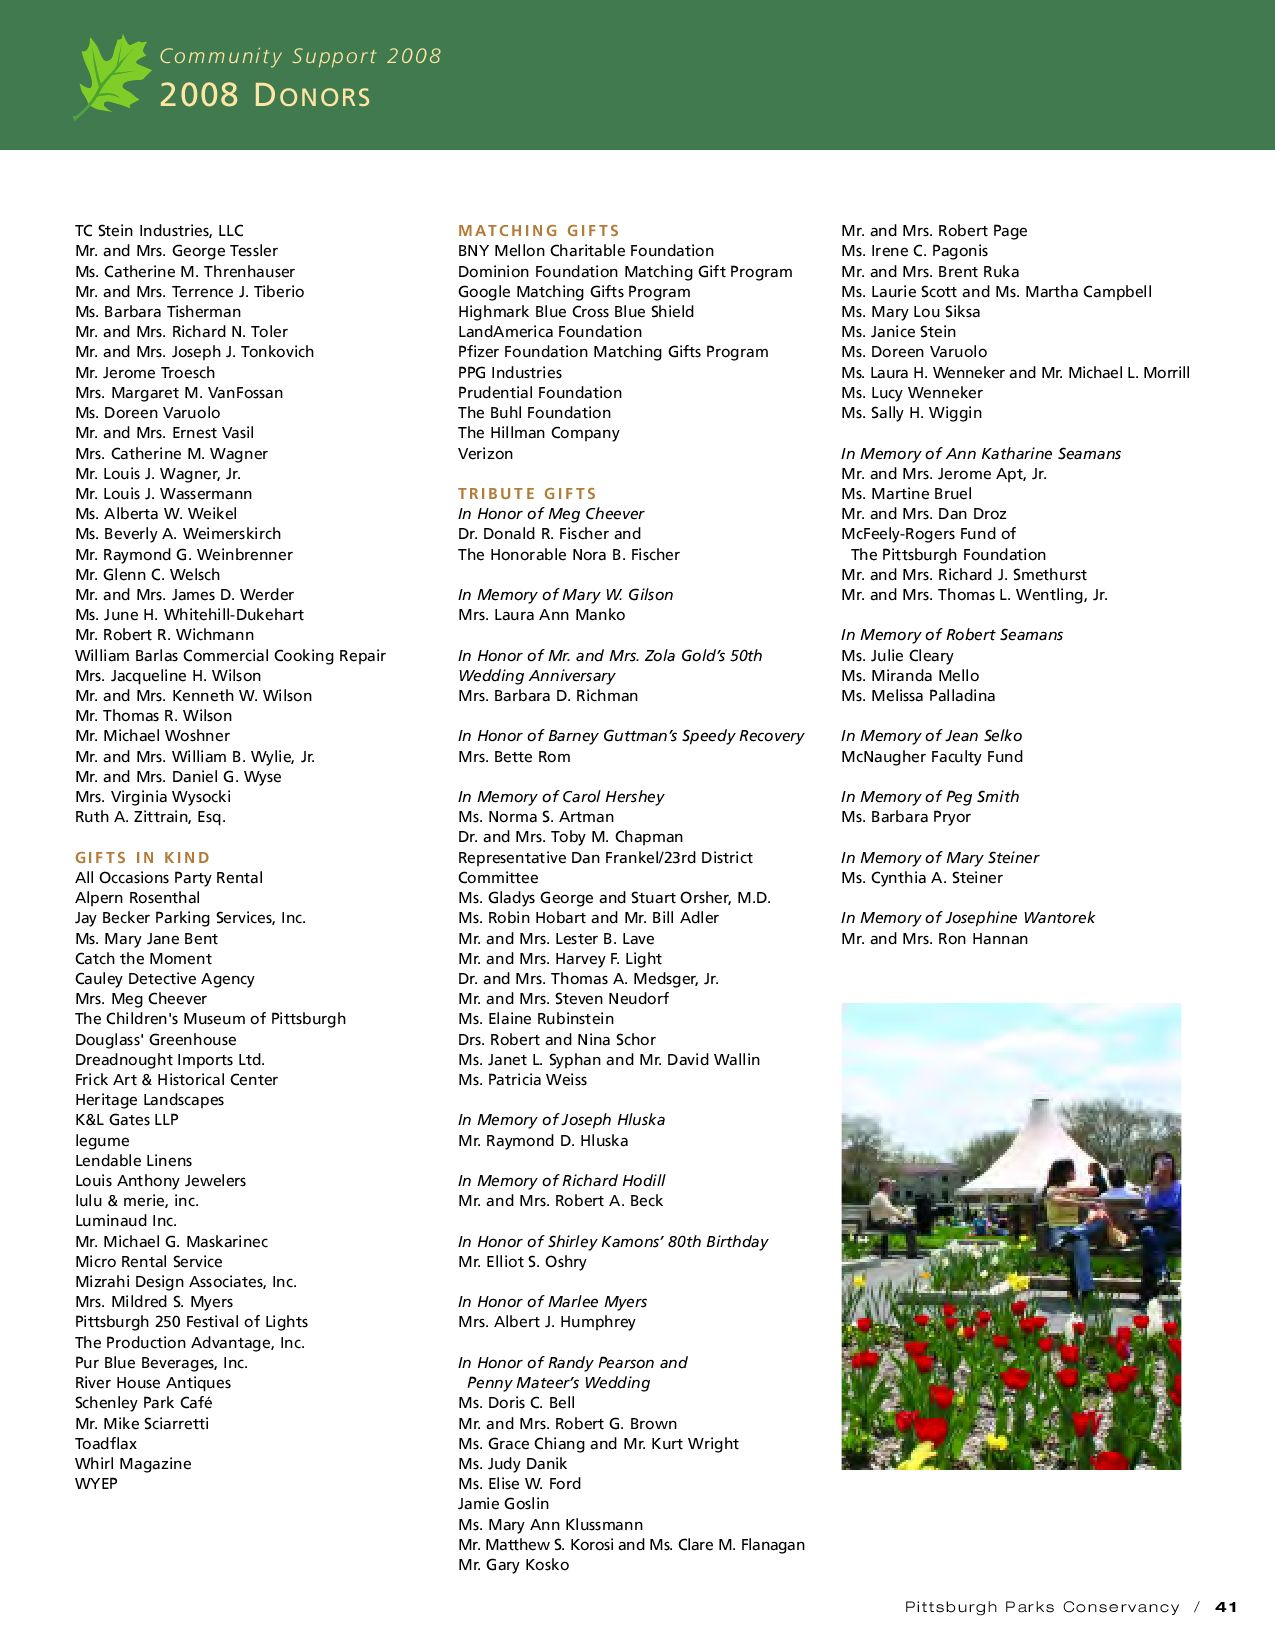 2008 Annual Report of the Pittsburgh Parks Conservancy